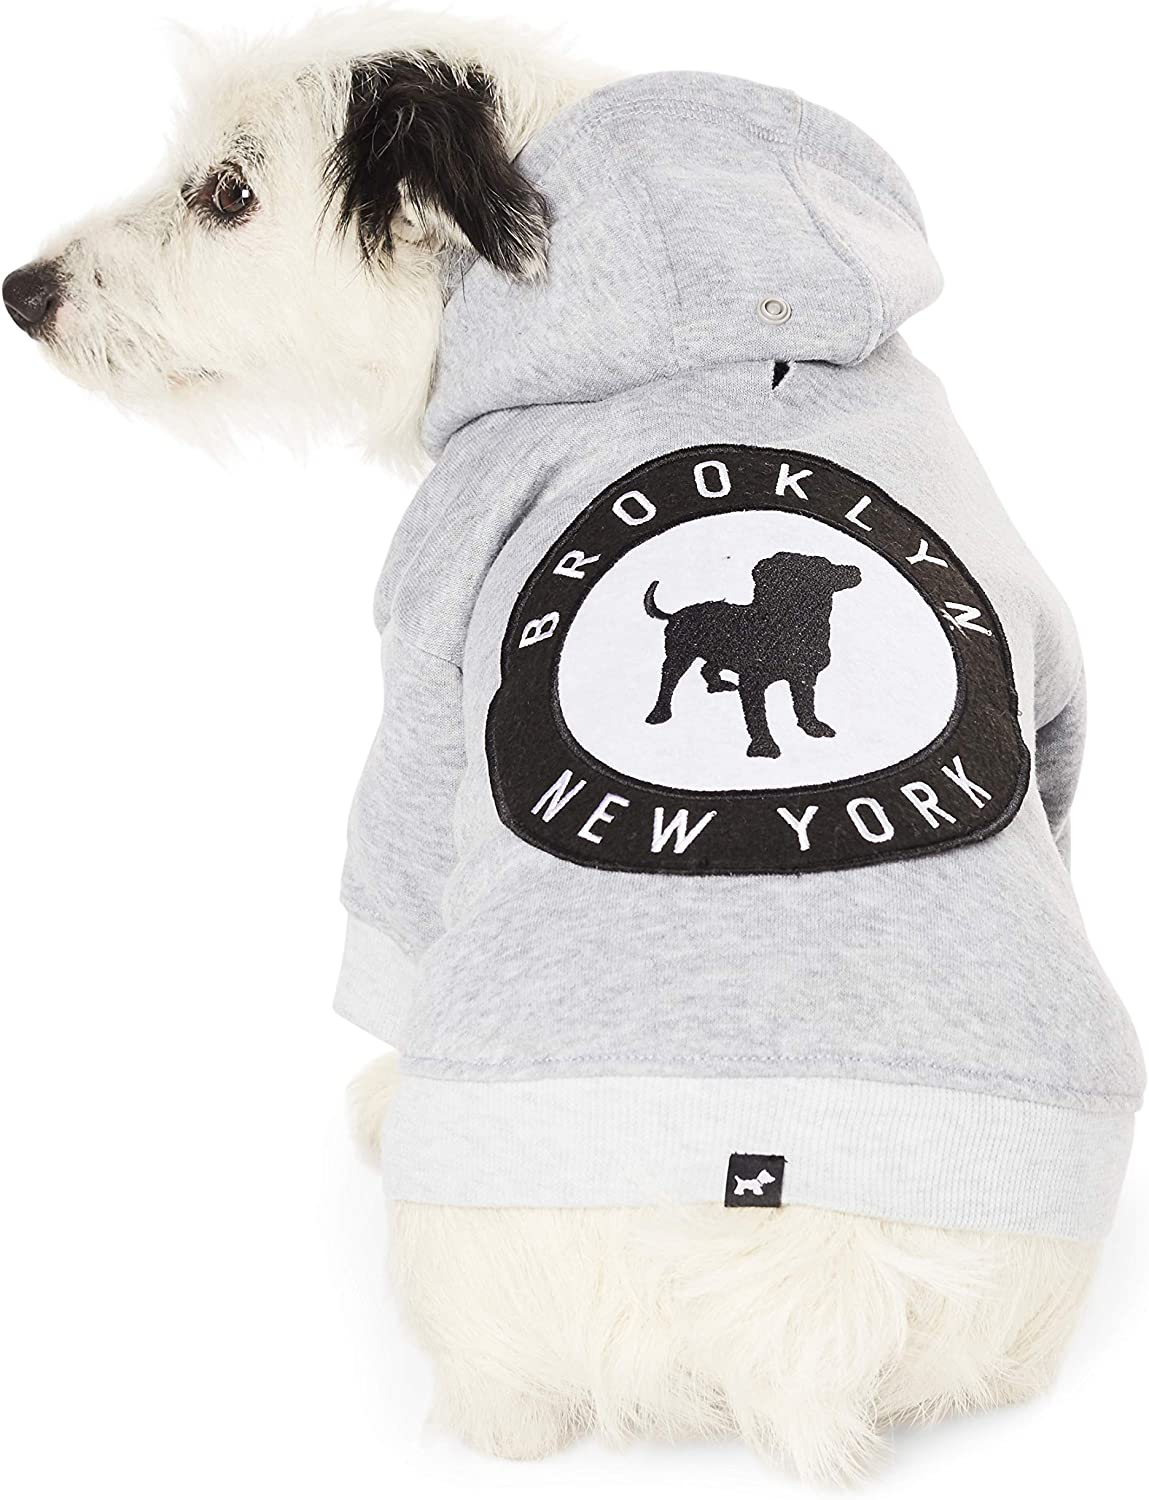 Hotel Doggy Brooklyn New York Fleece Dog Hoodie  Grey Cotton Polyester Dog Sweater X Small